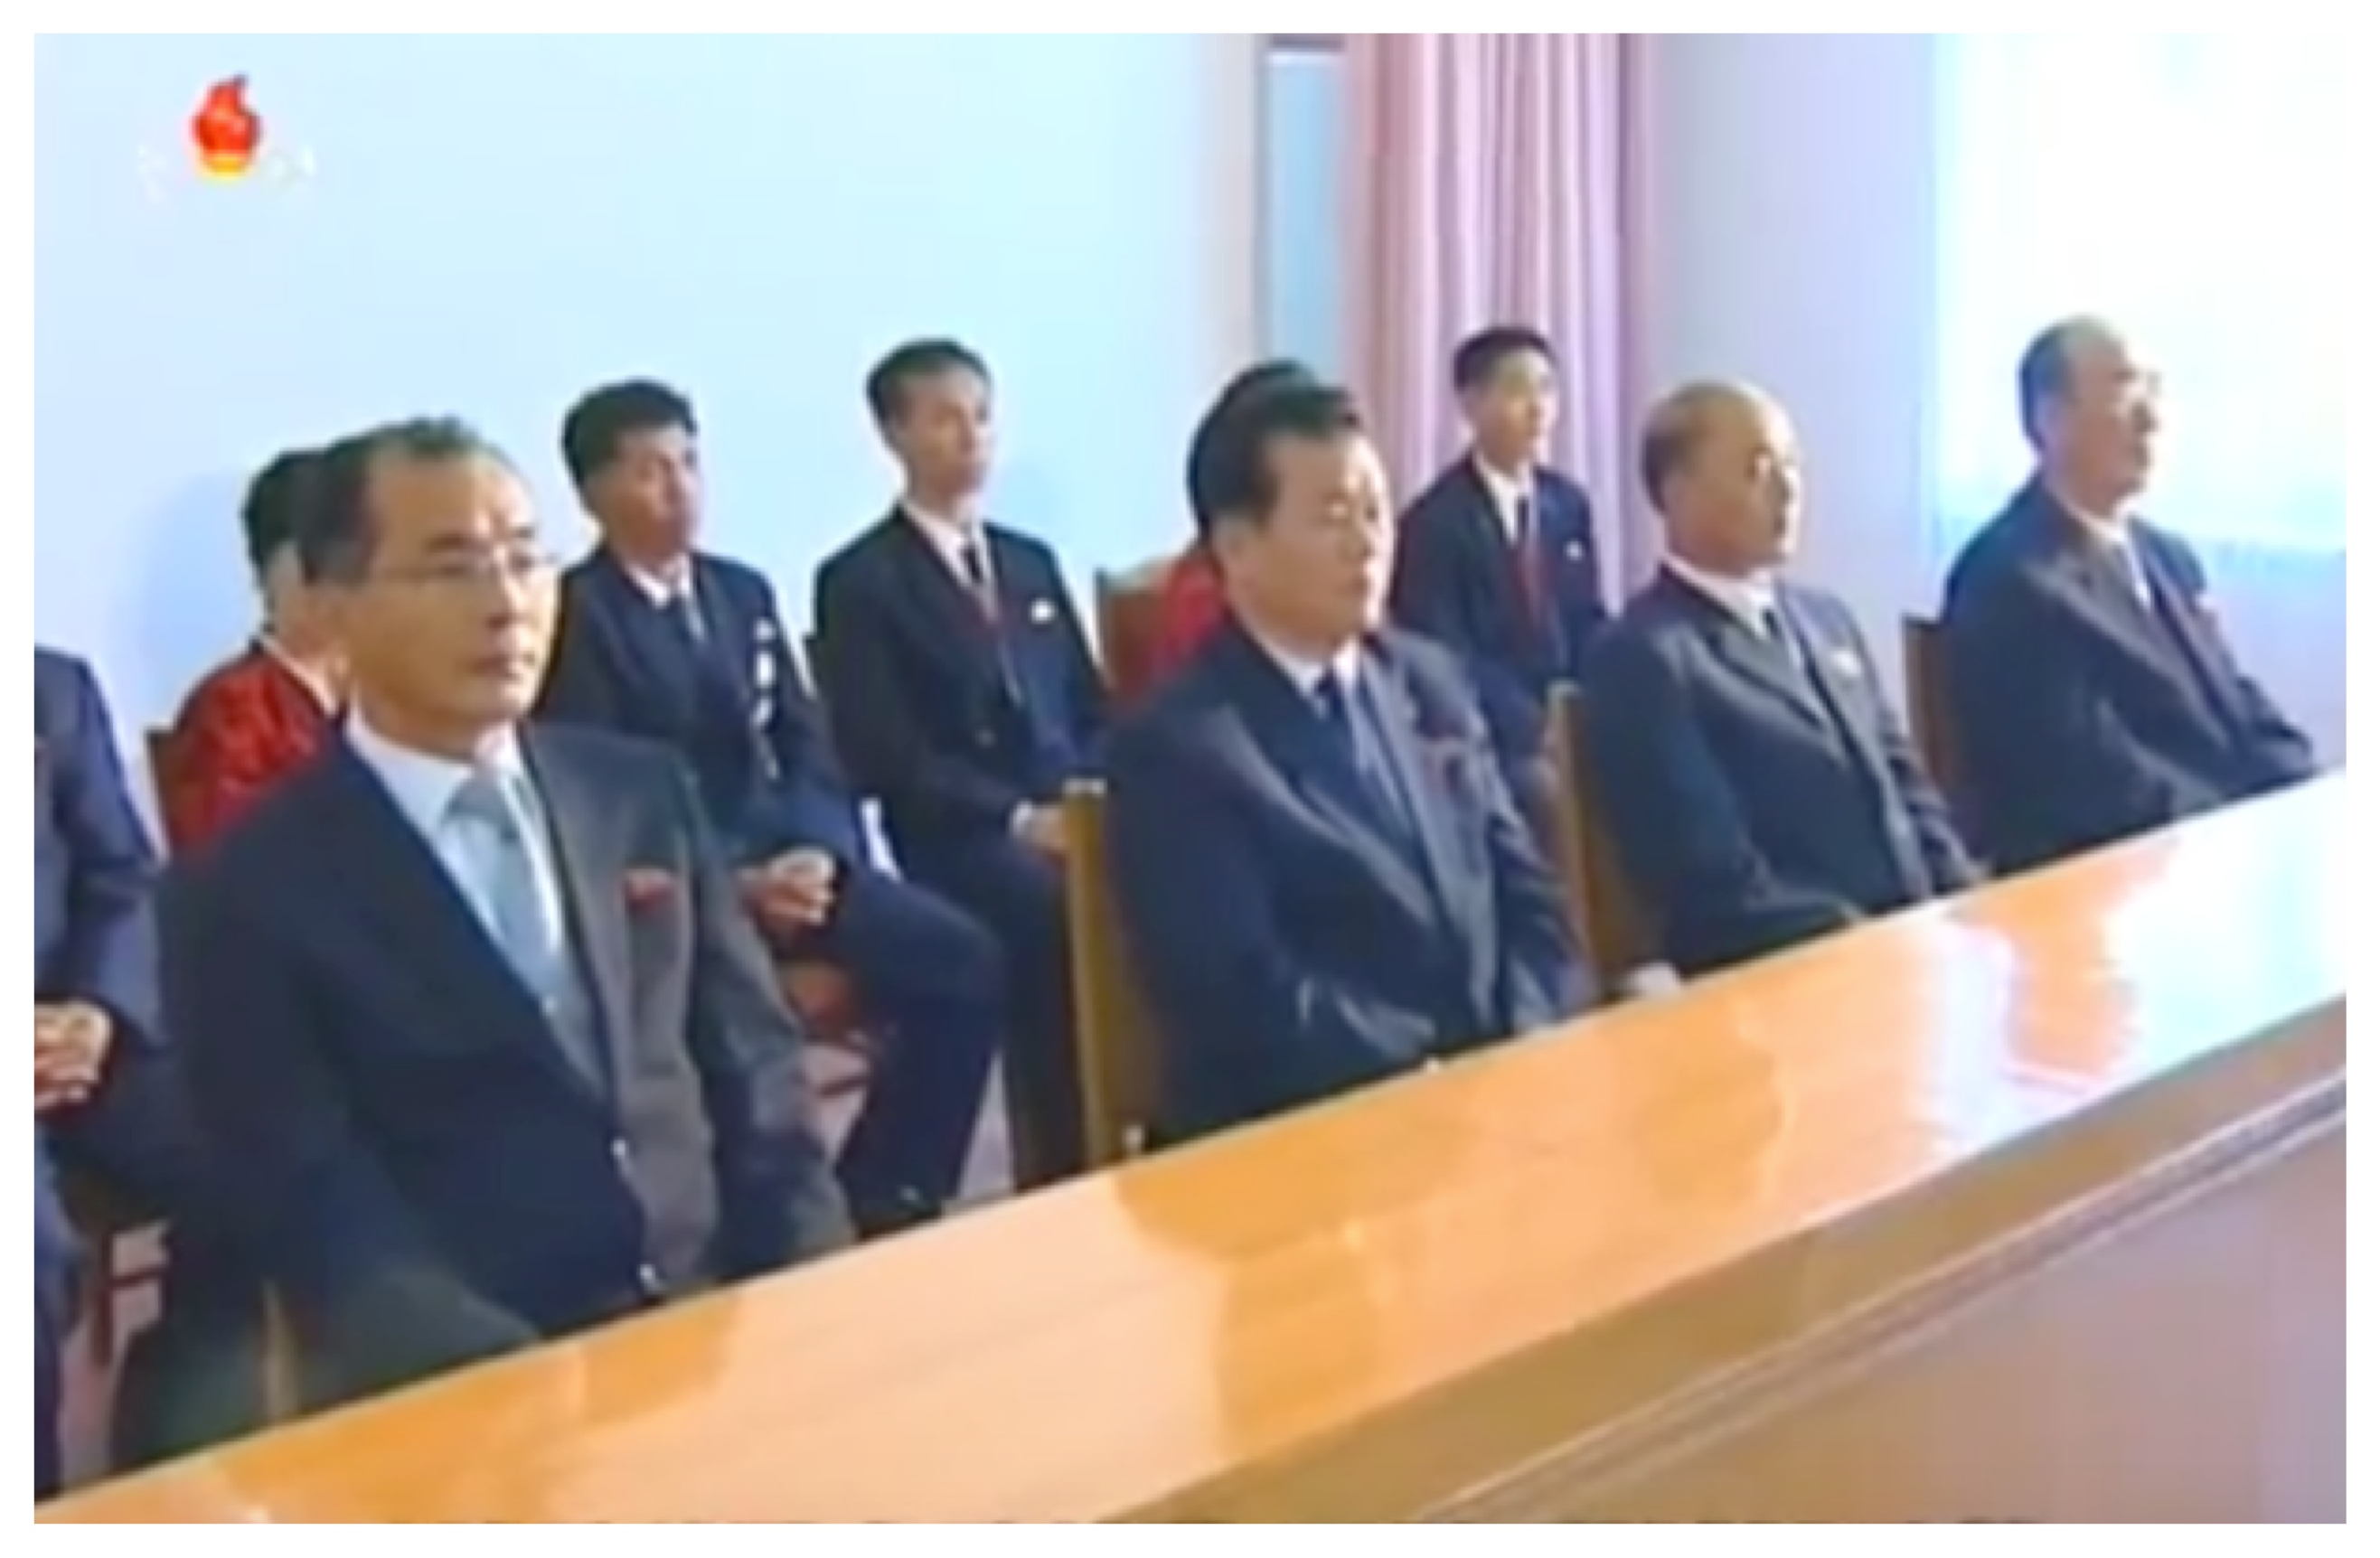 Kim Kwang Chol (left) attends an anniversary report meeting in October 2015 (Photo: Korean Central Television).